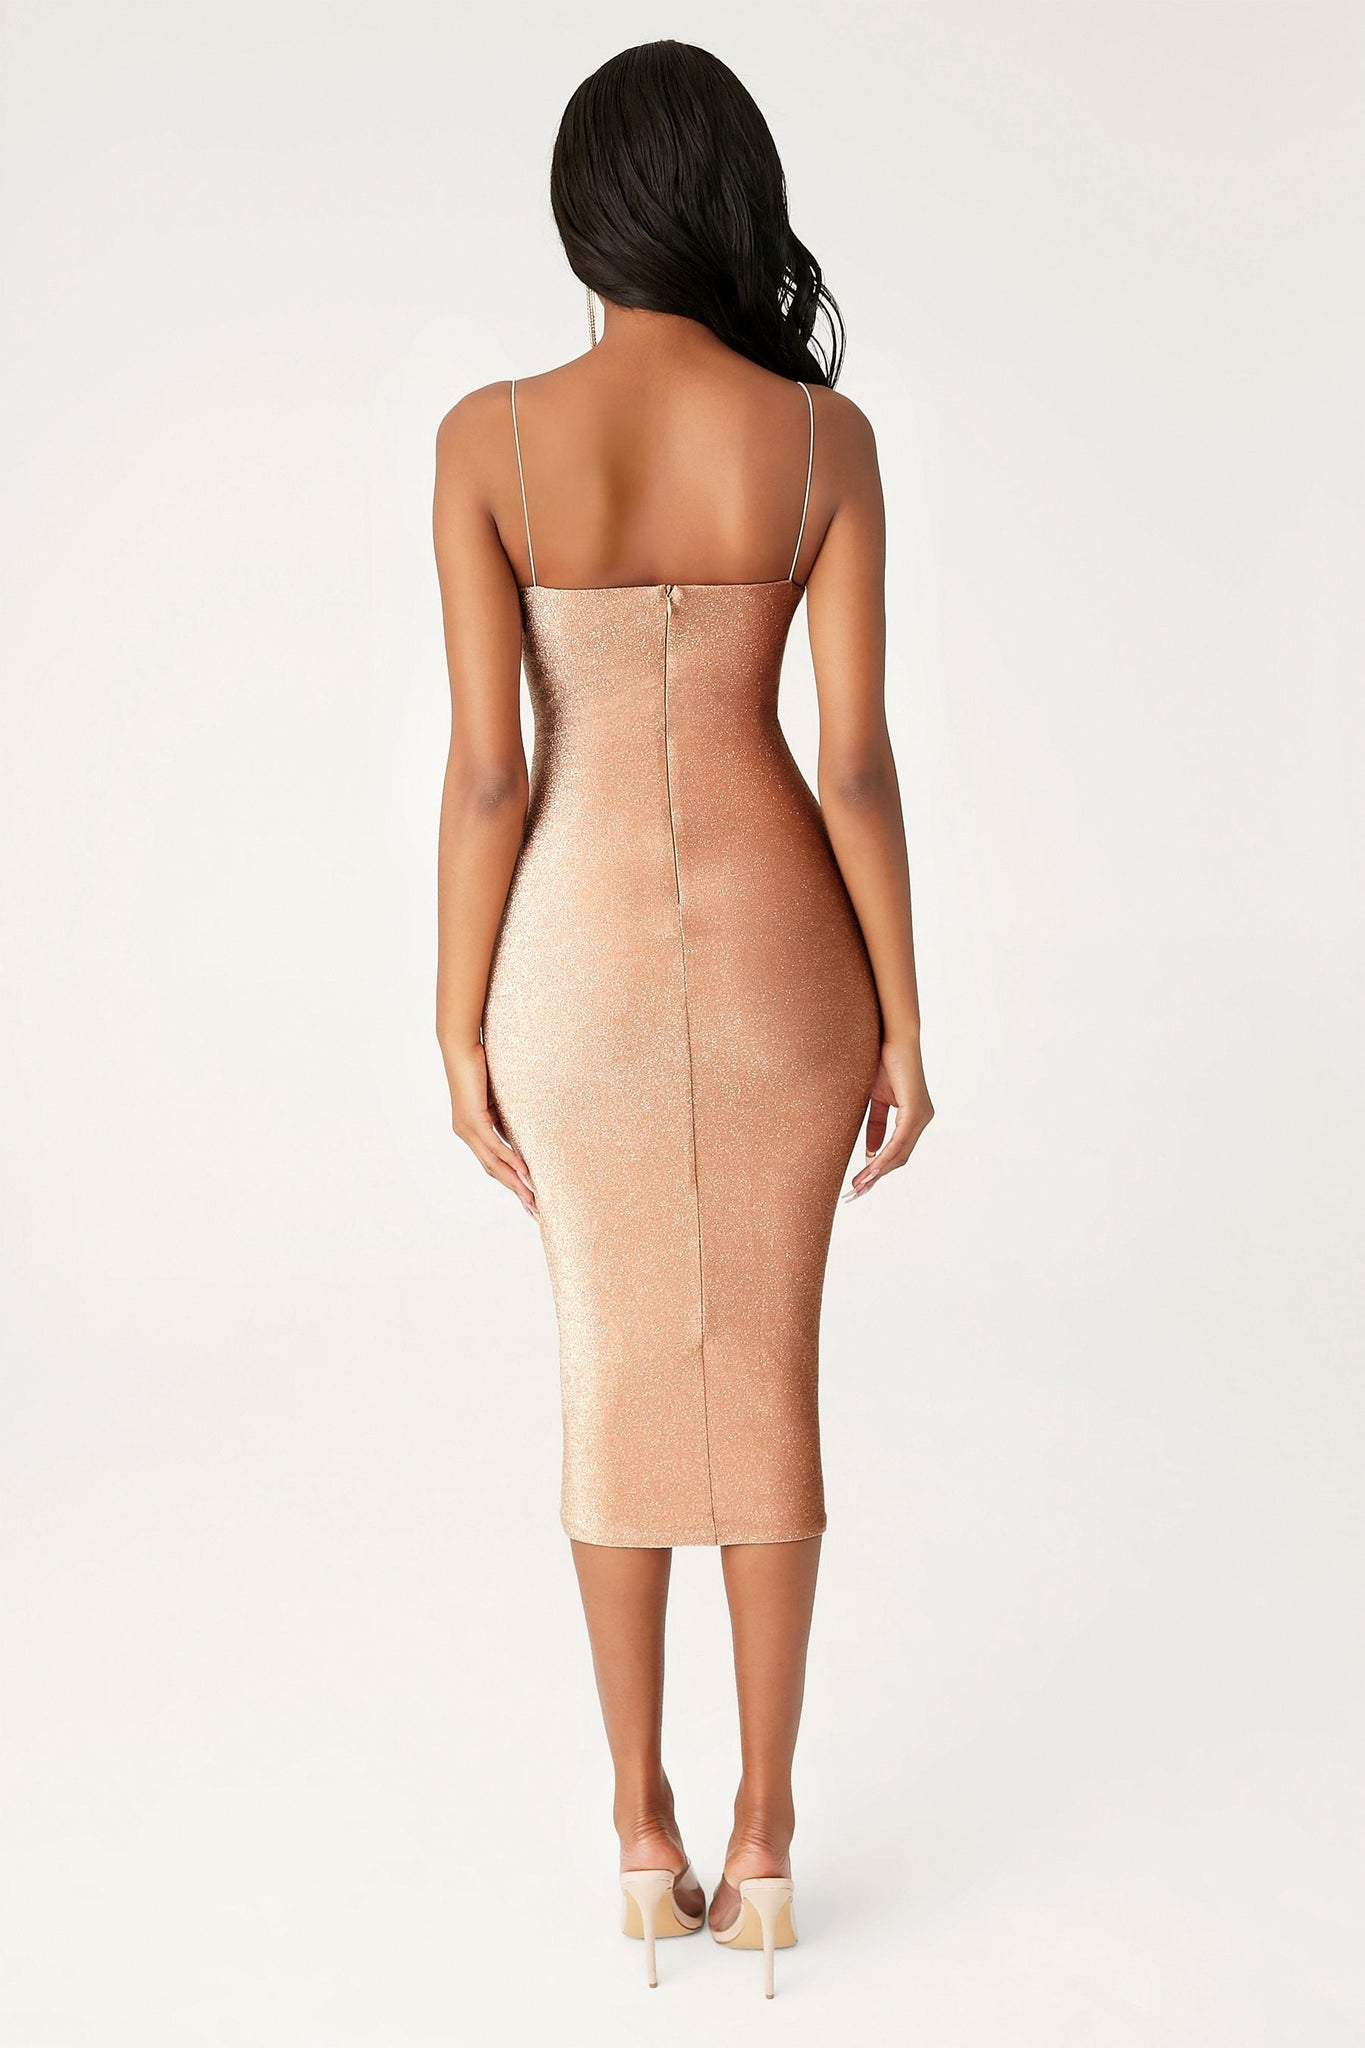 Jalia Thin Strap Shimmer Dress - Bronze - MESHKI